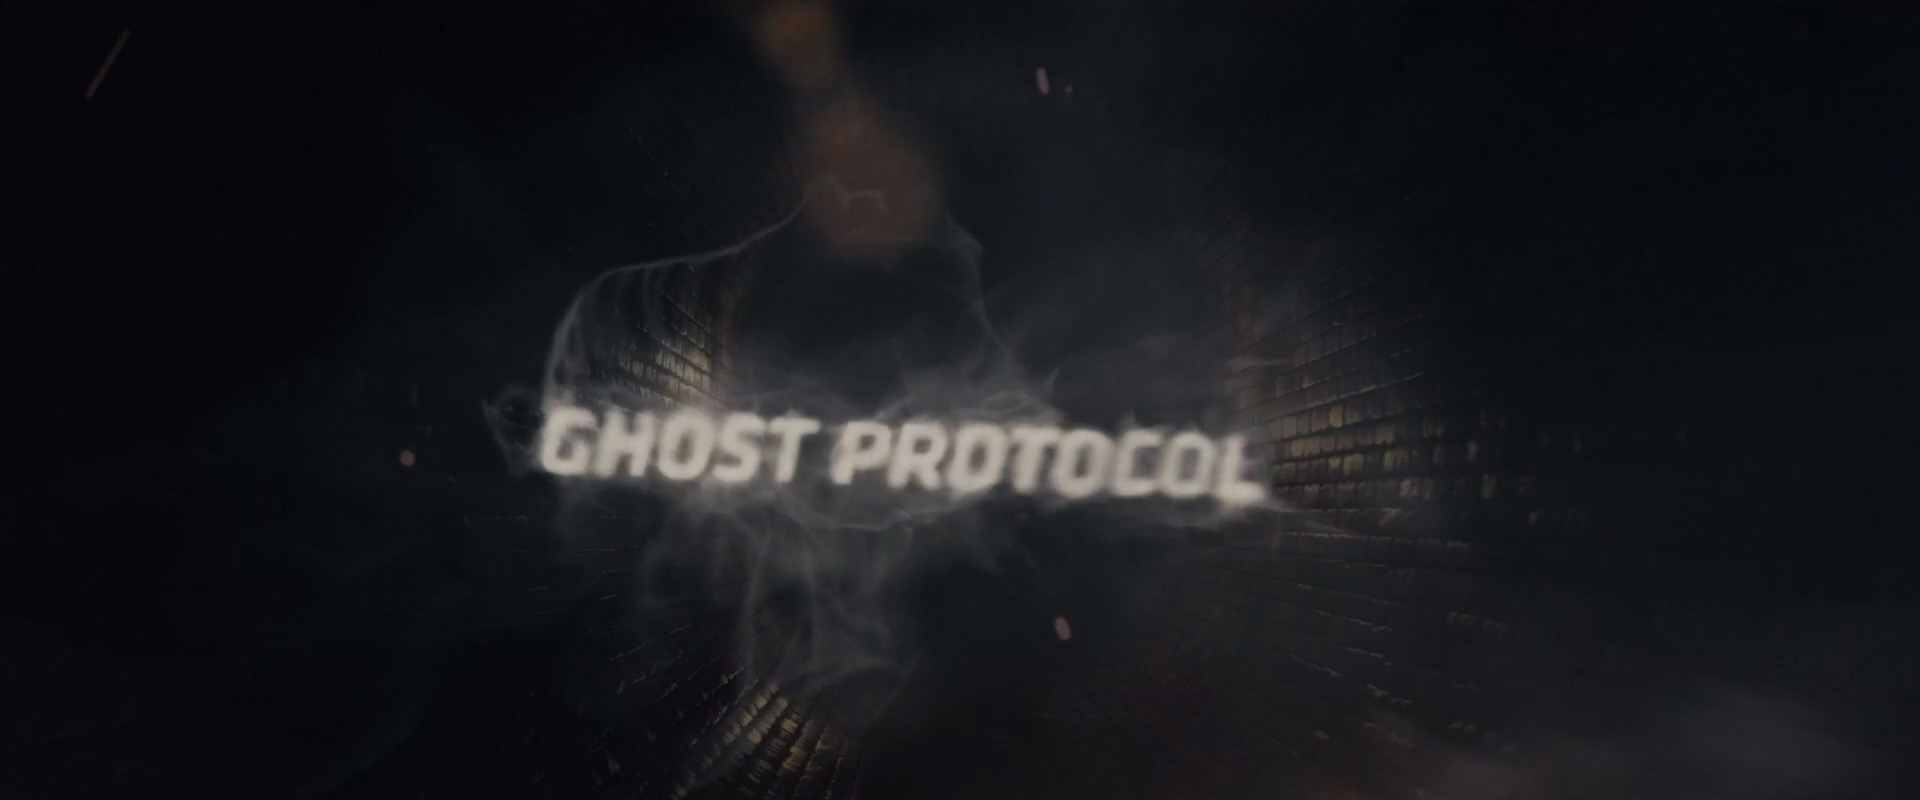 mission impossible ghost protocol download 720p